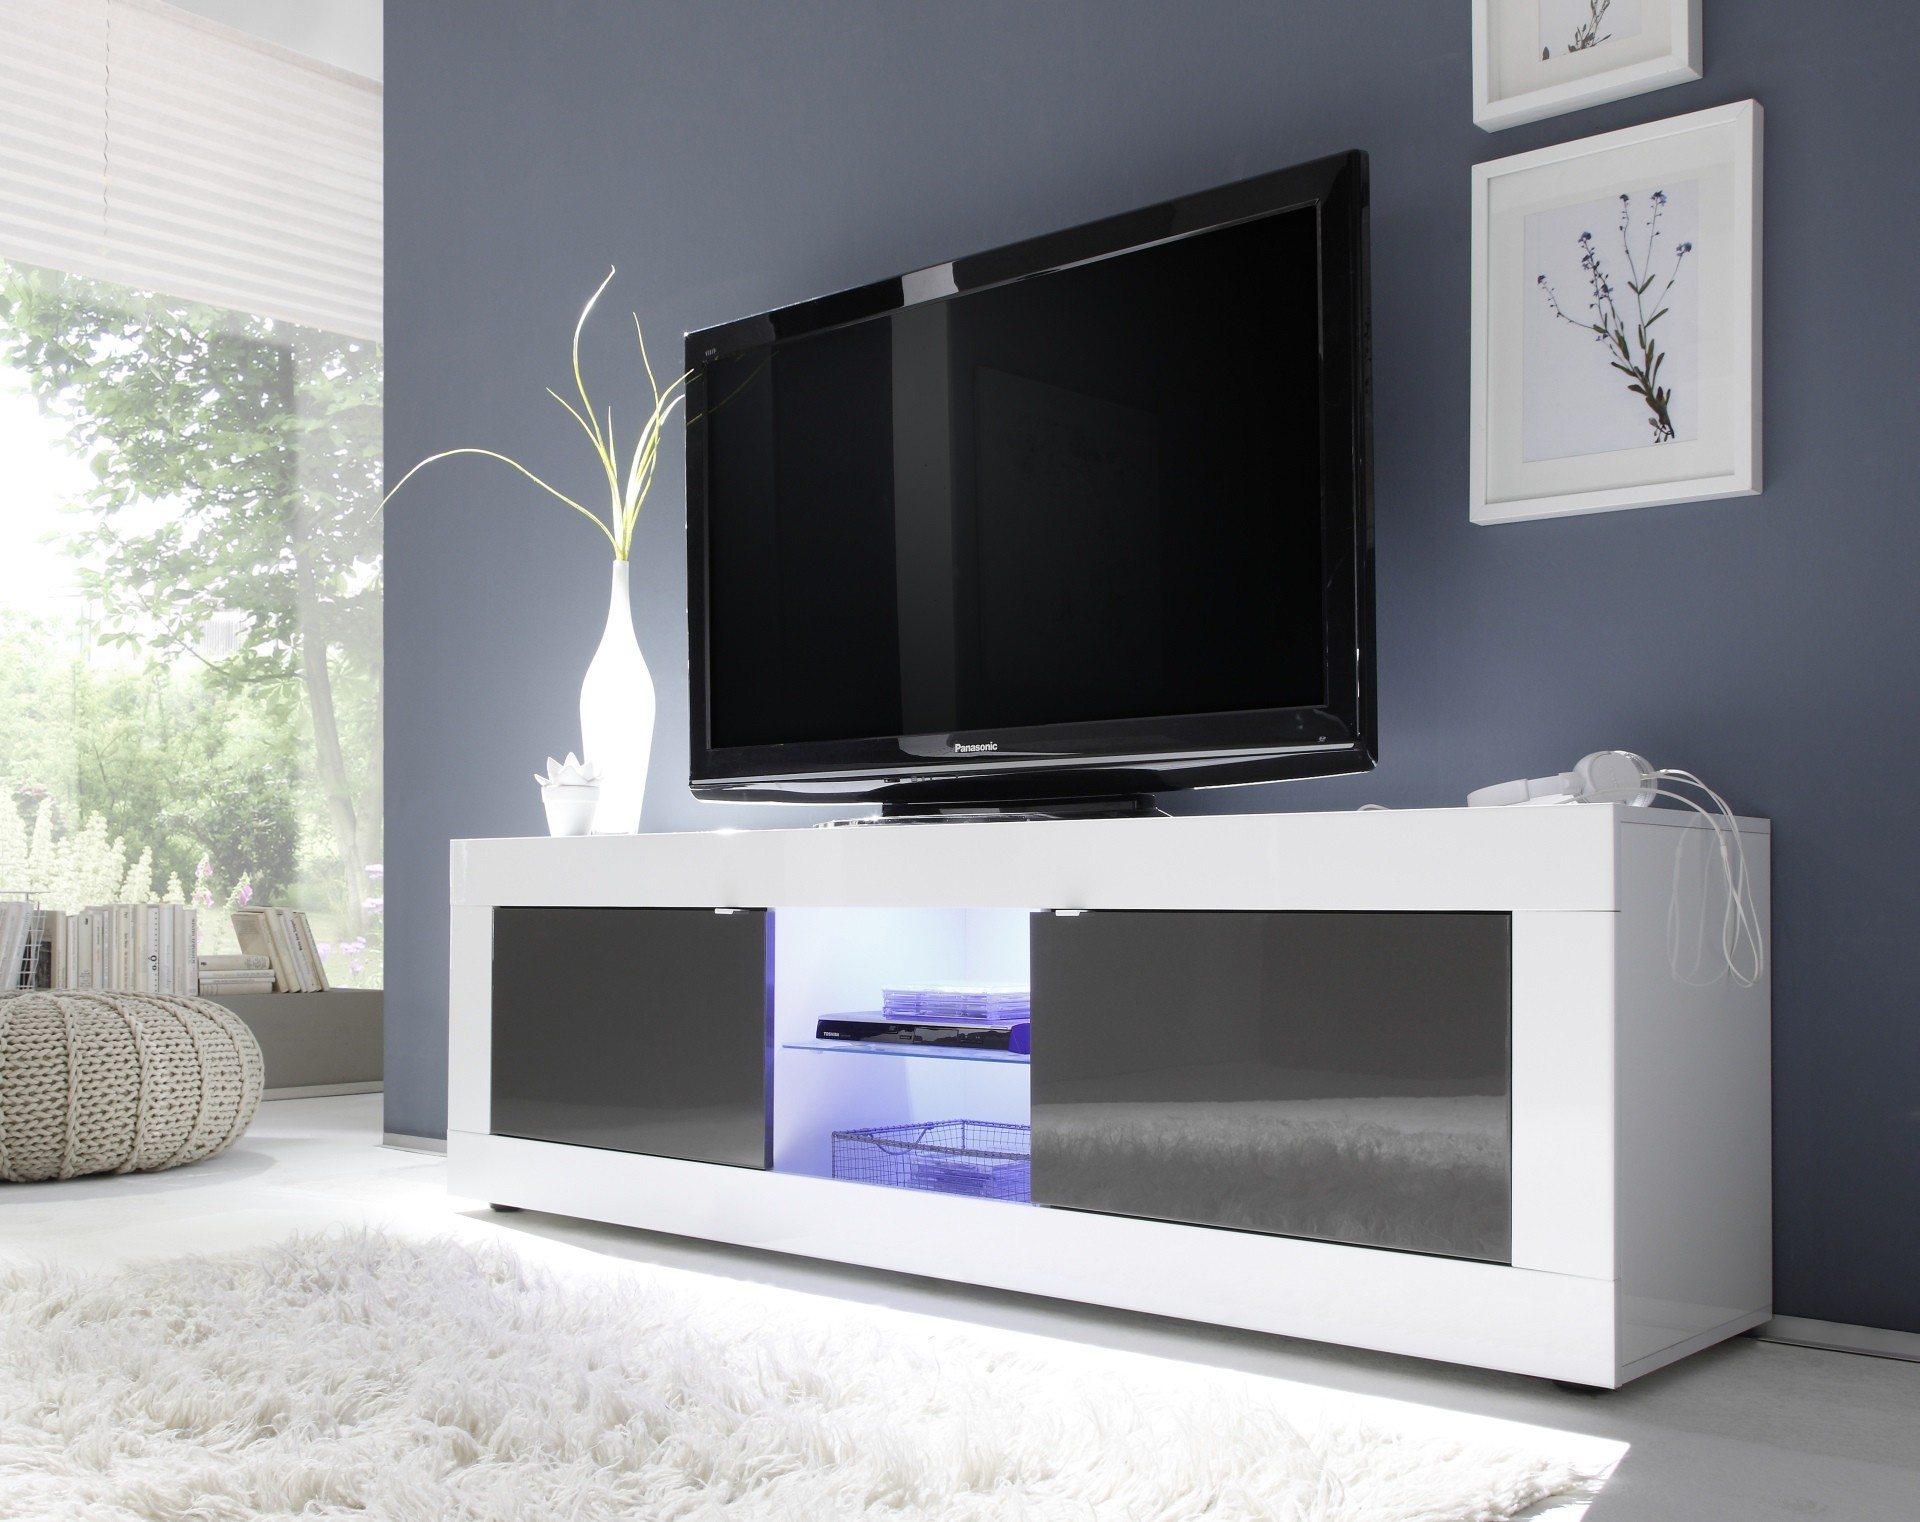 Meuble Tv Toronto Blanc Et Anthracite 2 Portes 1 Niche # Meuble Tv Blanc Long